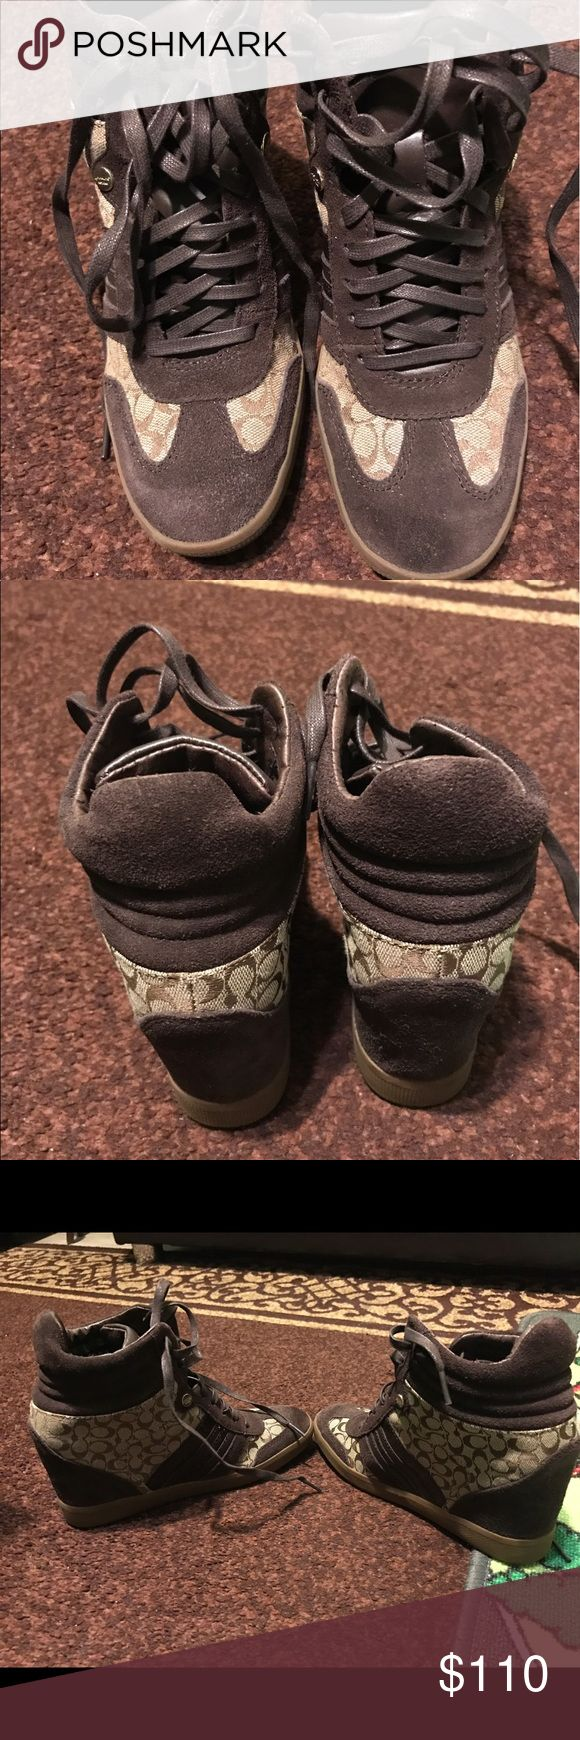 Womens coach sneakers wedges tan/brown size 7 Only worn once. In great condition! Price is negotiable 😊 Coach Shoes Sneakers